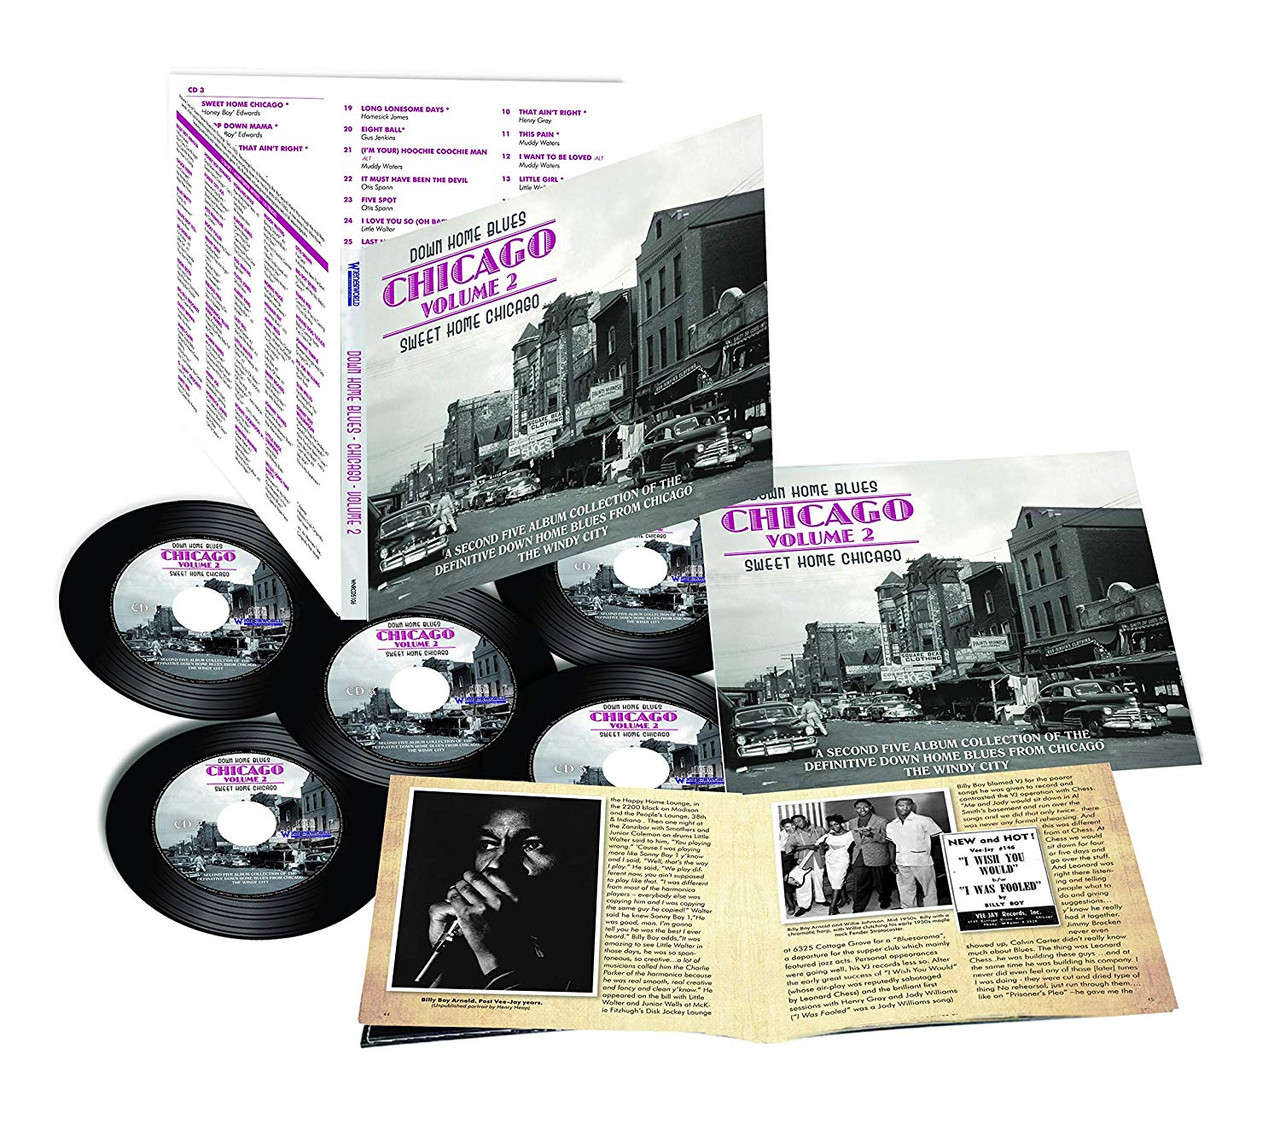 Down Home Blues: Sweet Home Chicago Vol 2 - 5 CD Set  94 PAGE BOOK